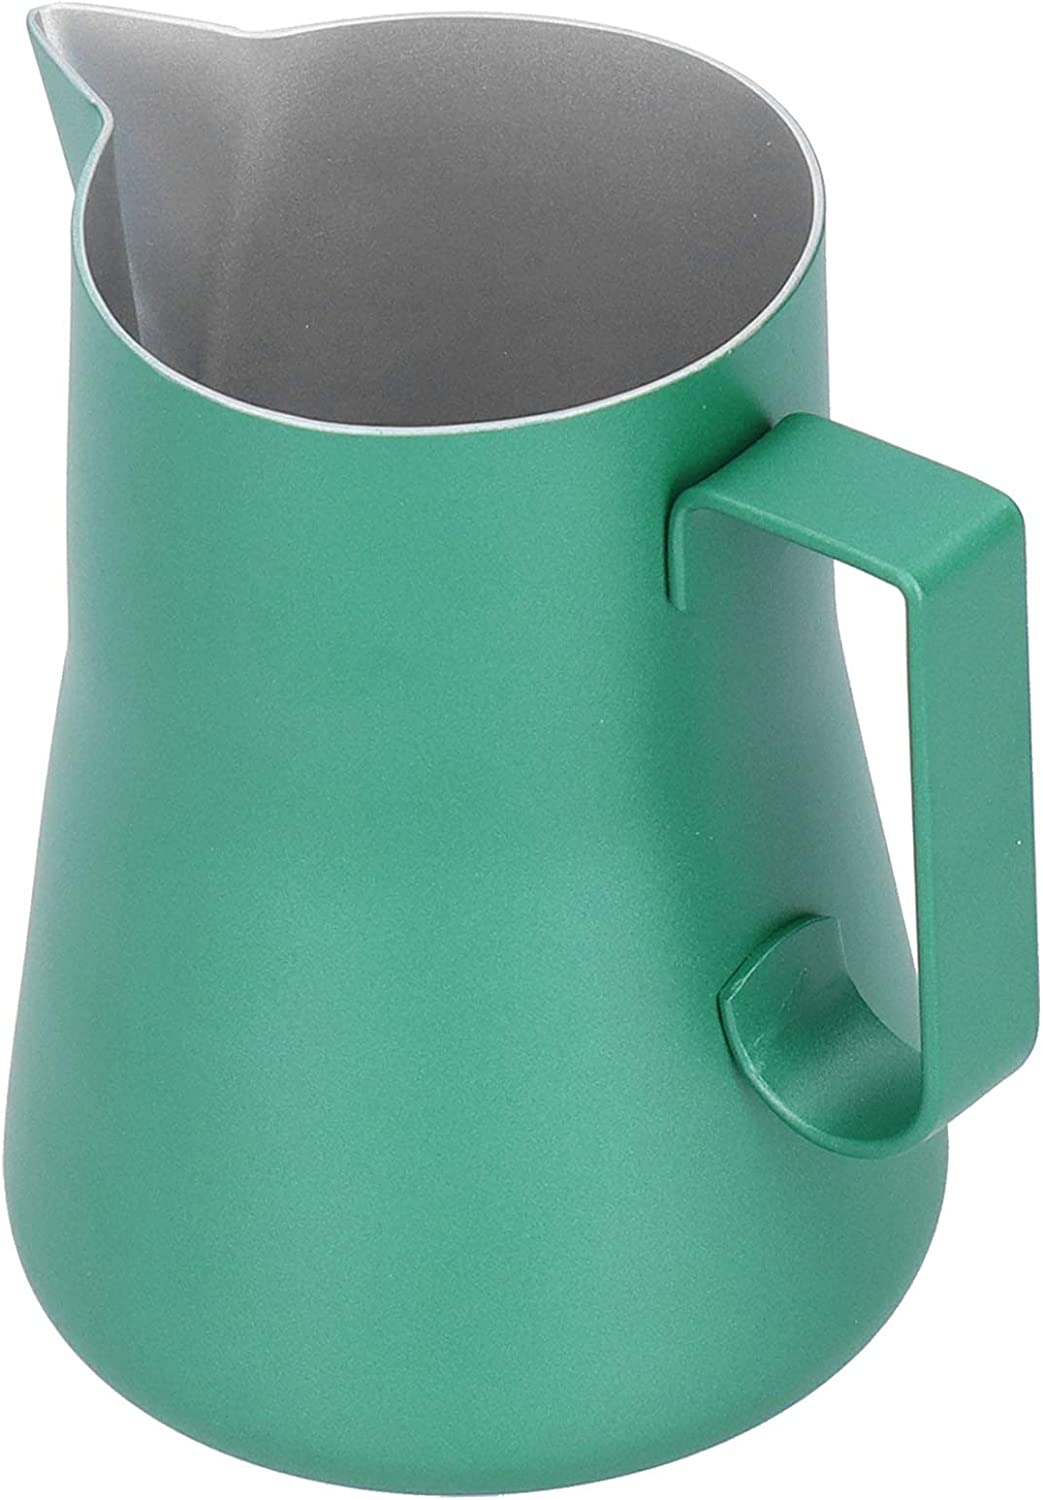 304 Stainless Steel Garland Pot Online limited product Cup for Beak Pointed Max 41% OFF Frothing